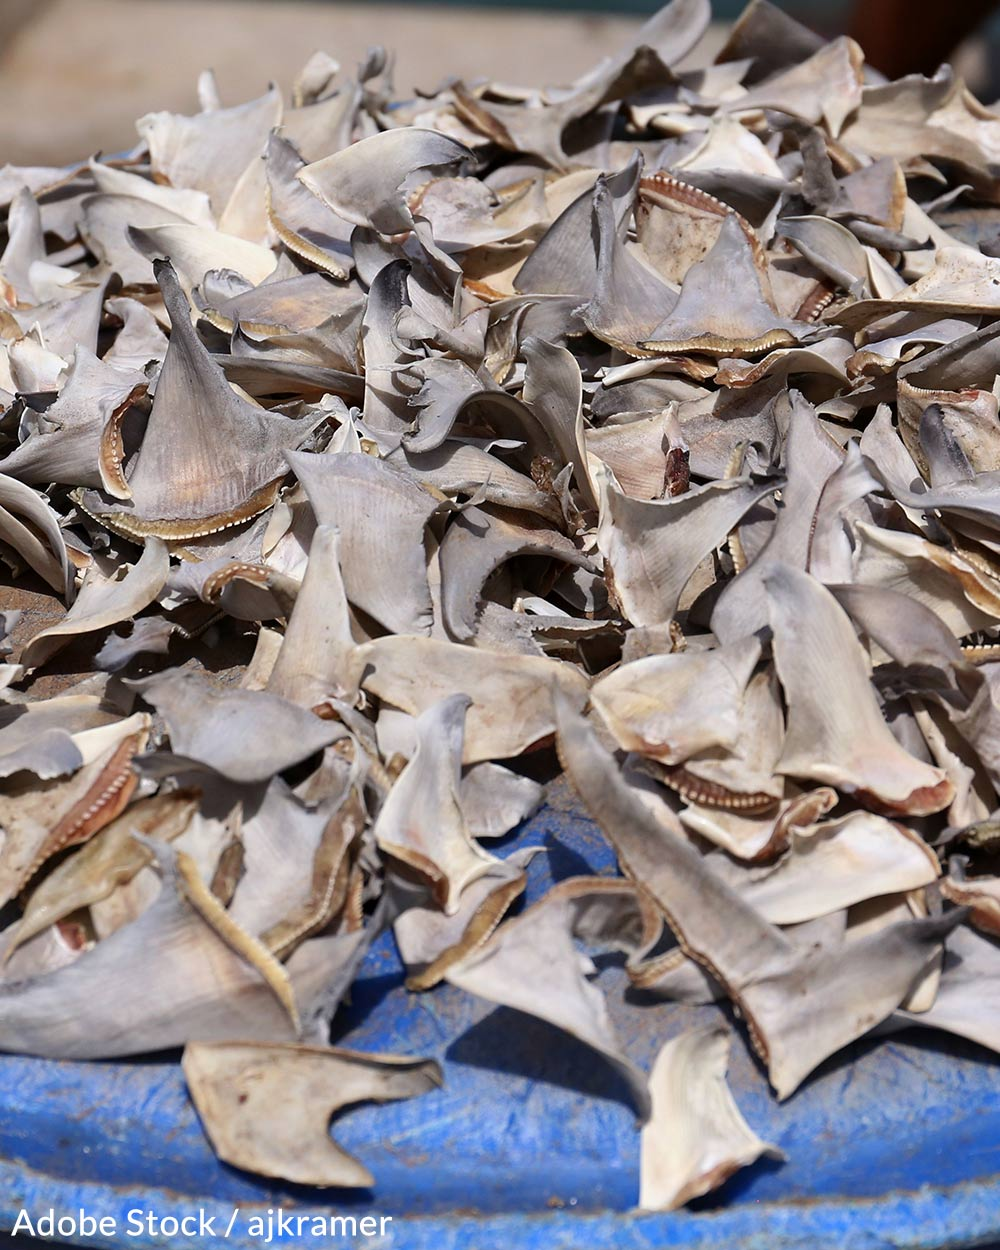 Shark Finning Claims More Lives Every Year Than The Population Of Mexico